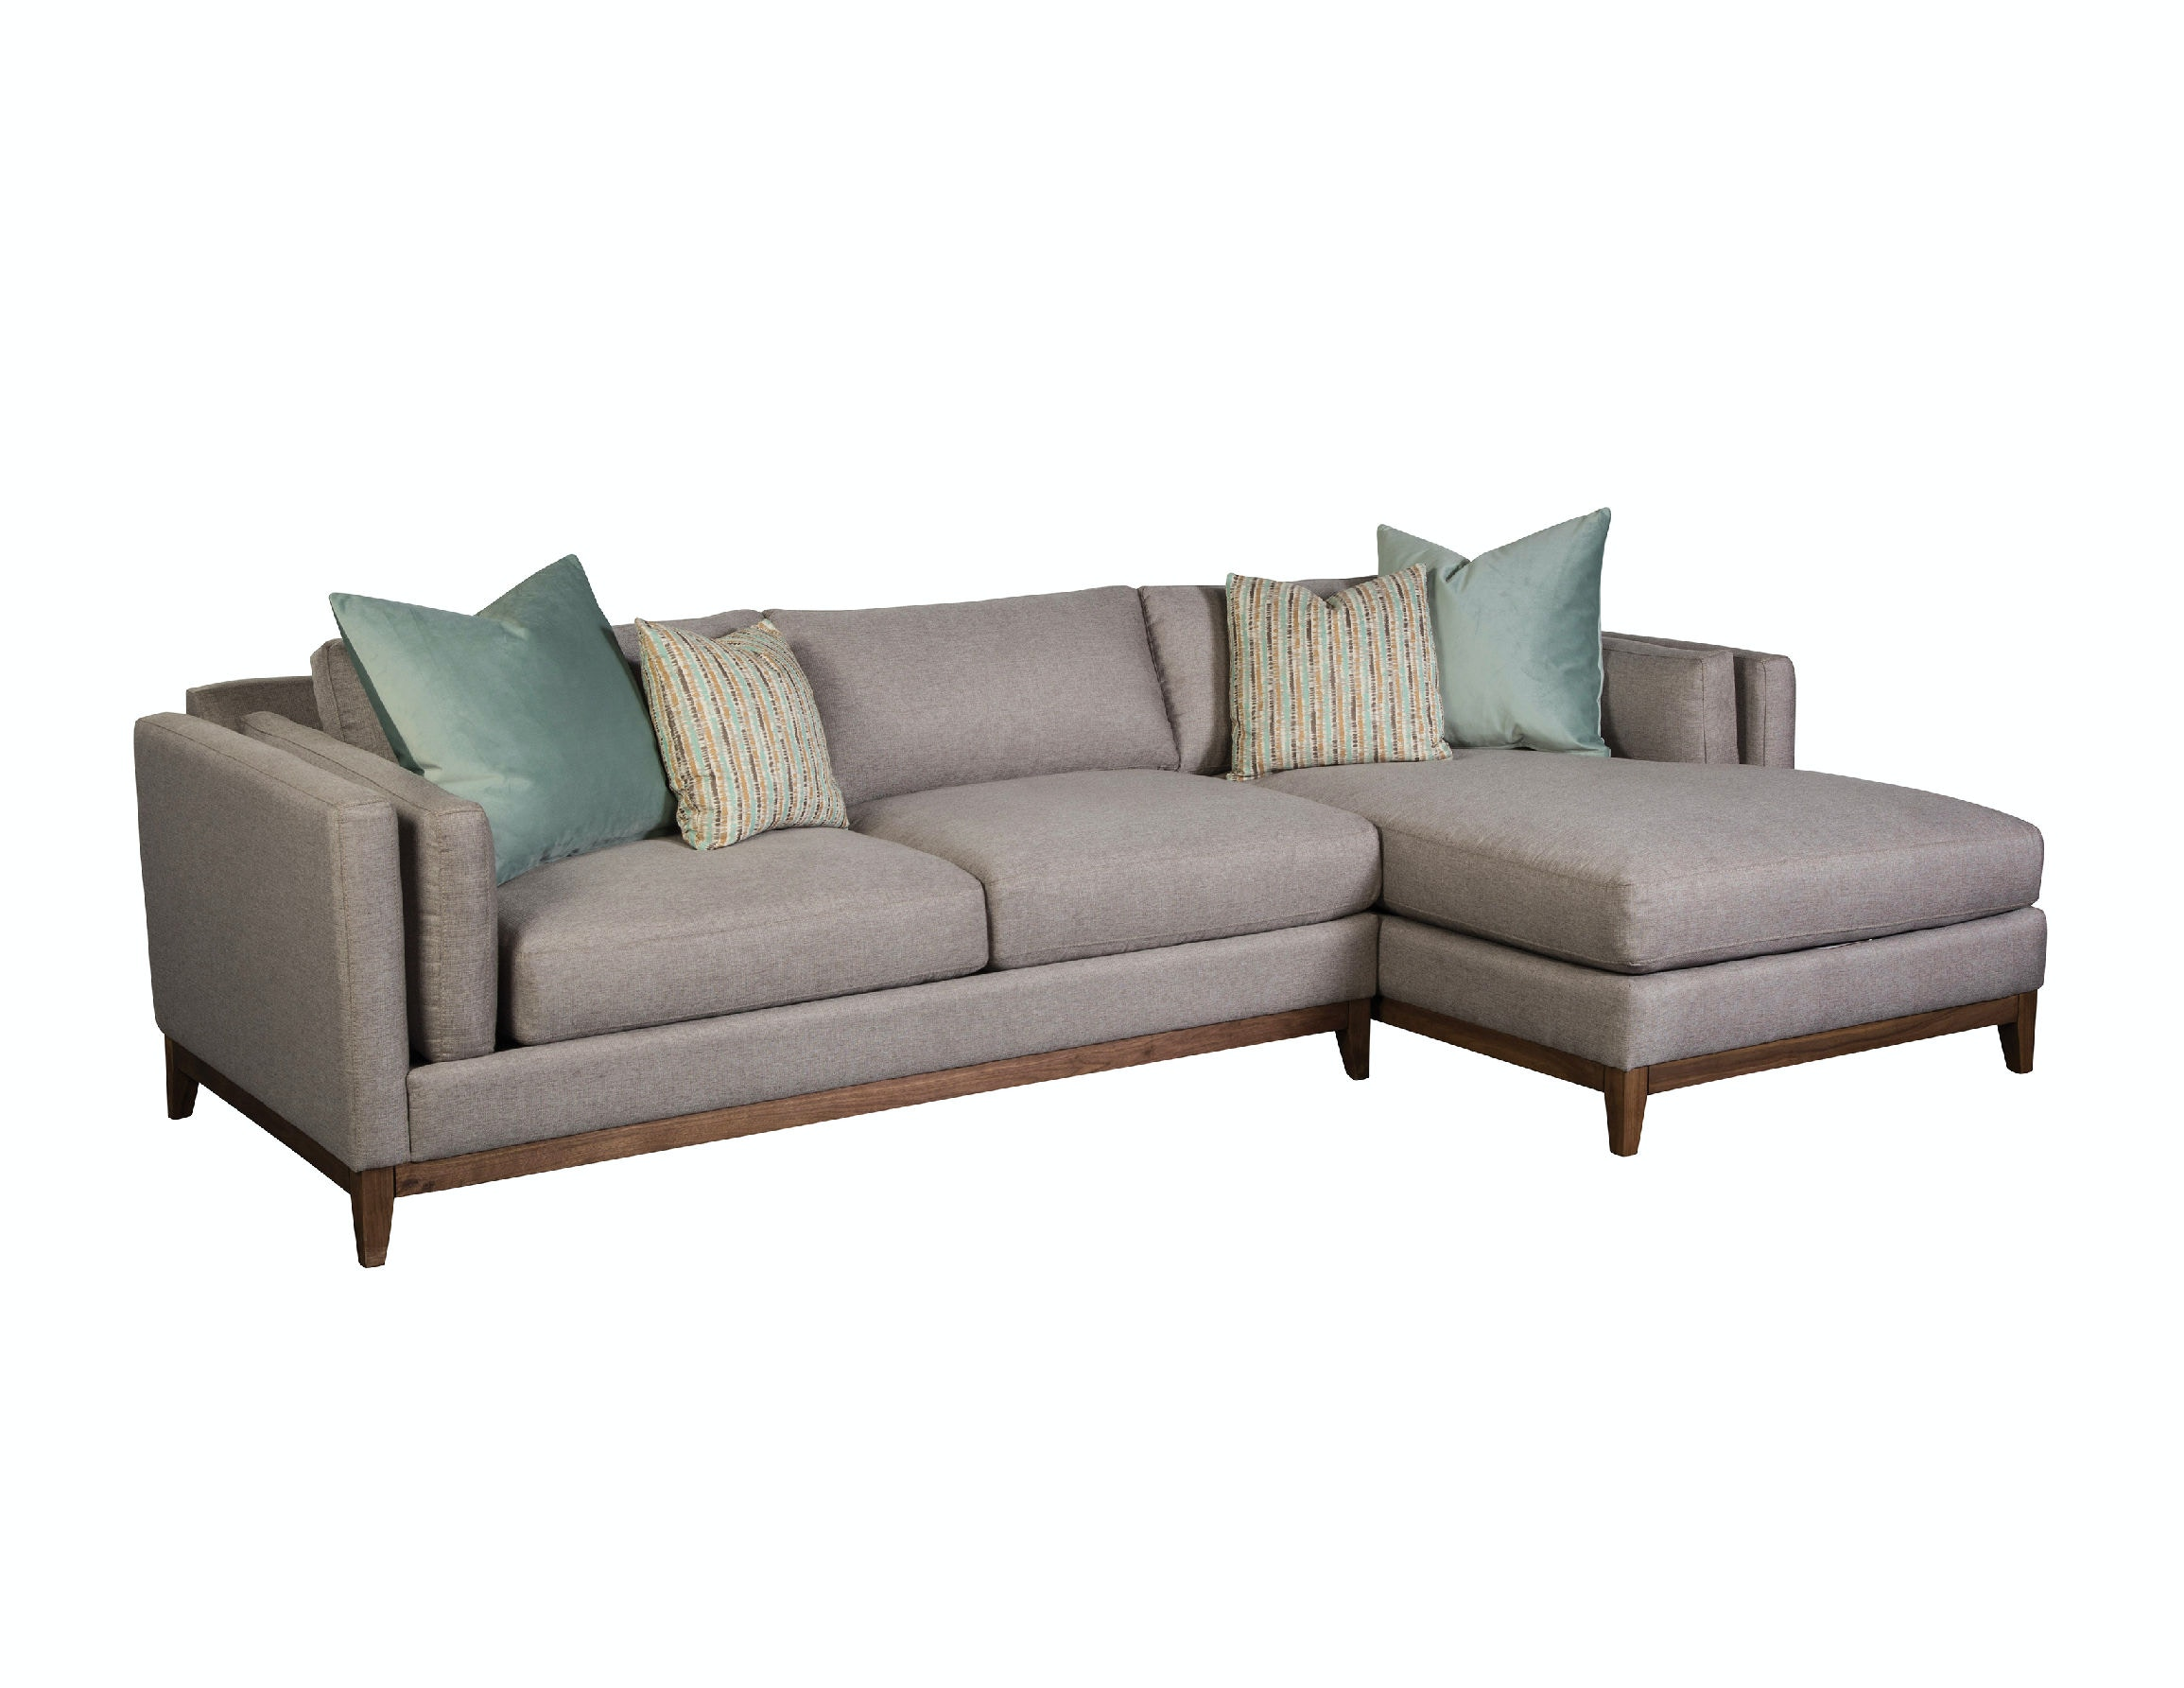 Exceptionnel Jonathan Louis International Left Arm Facing Sofa 34735L